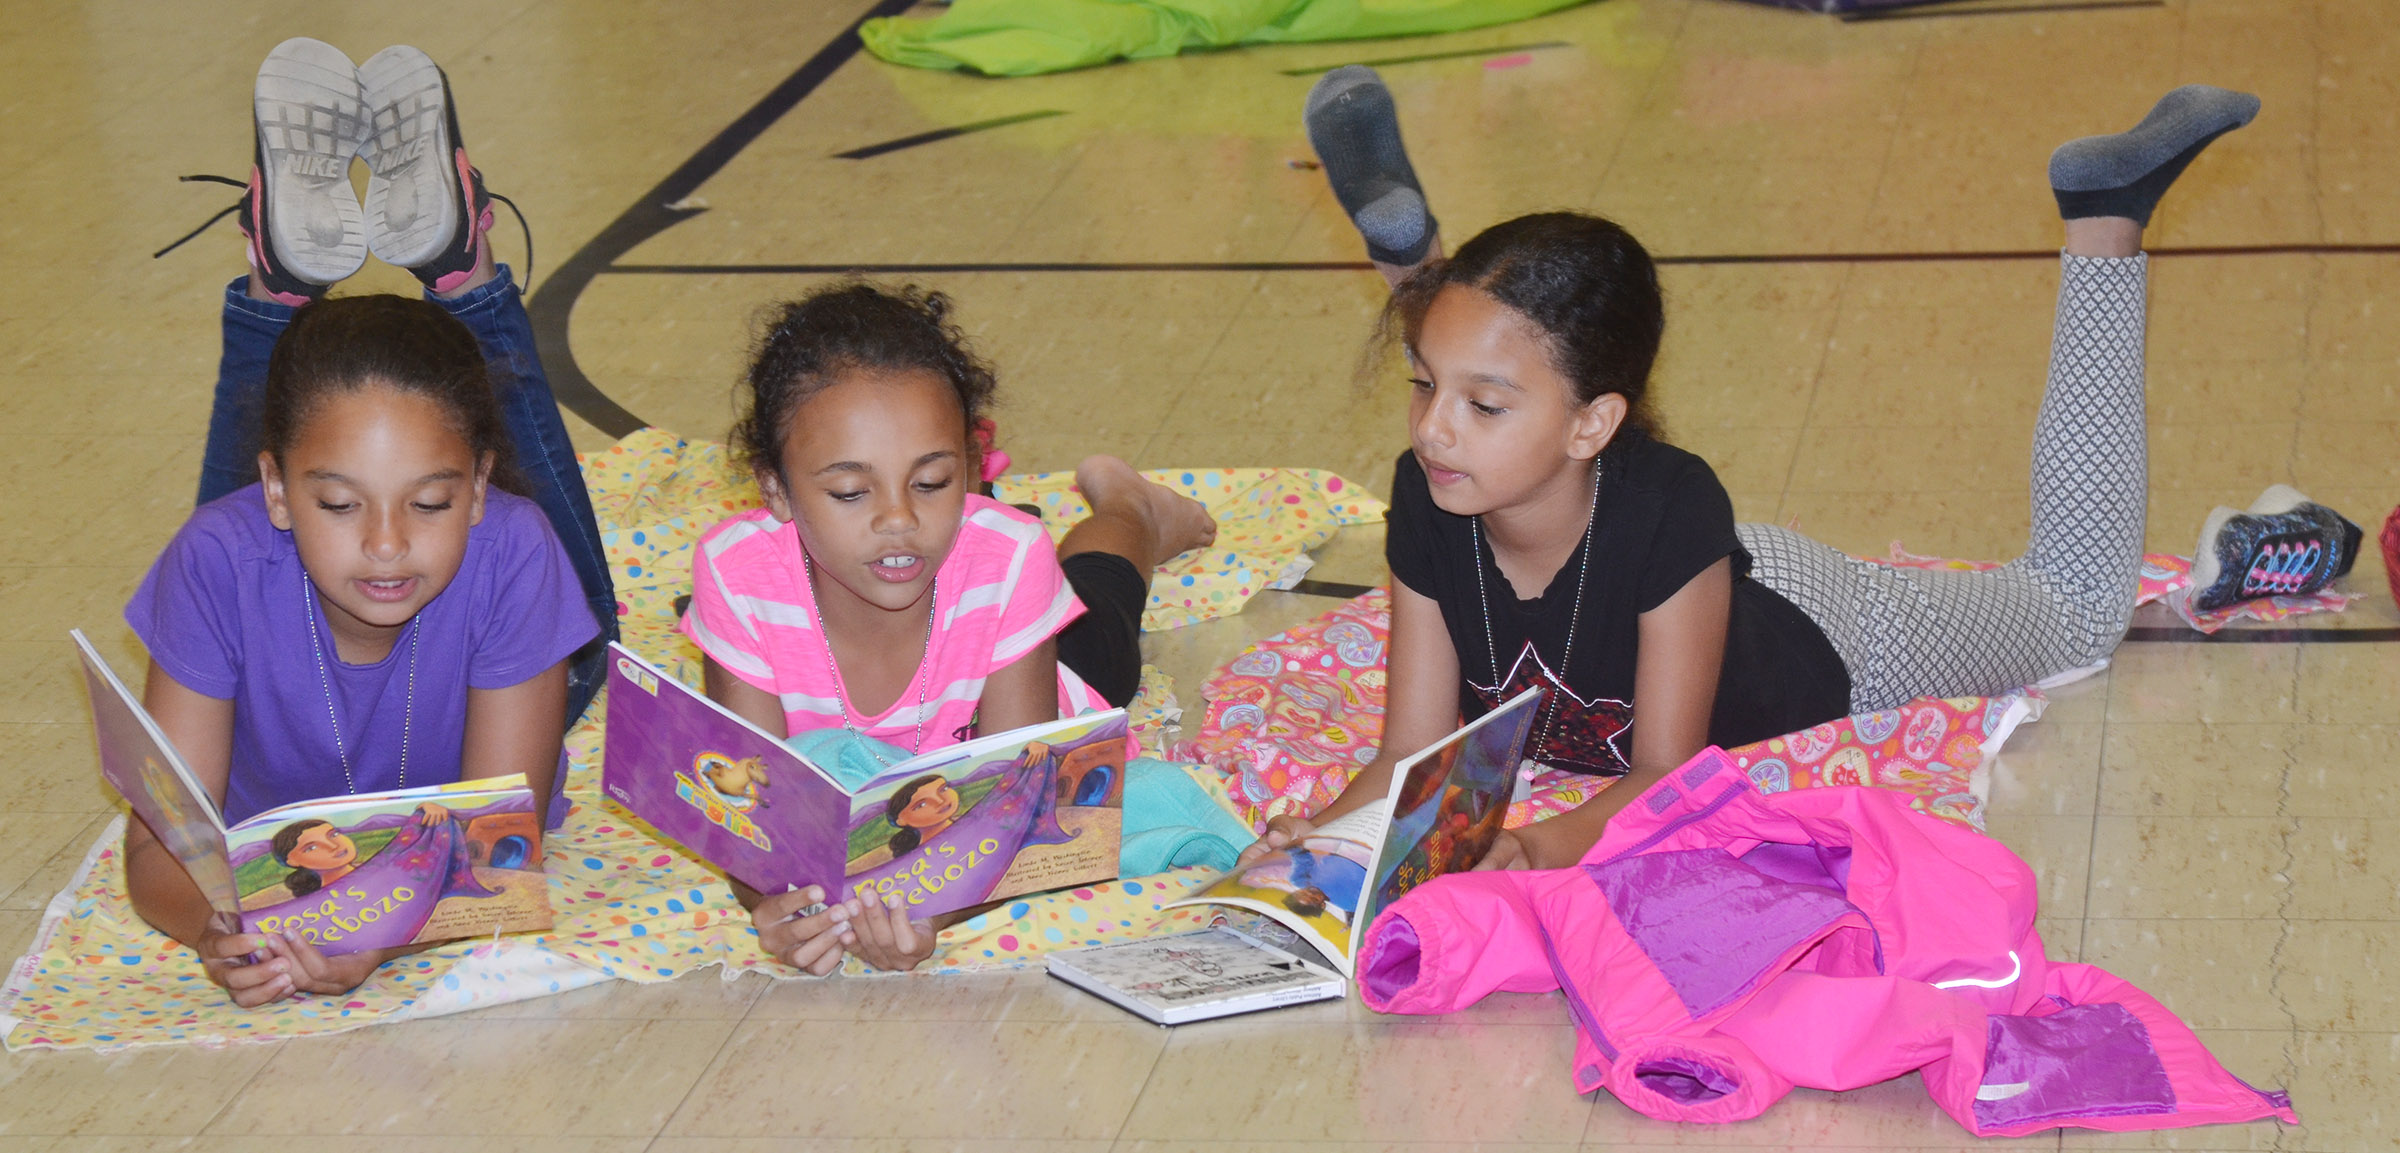 CES third-graders, from left, Aleecia Knezevic, Braelyn Taylor and Alyssa Knezevic read together.